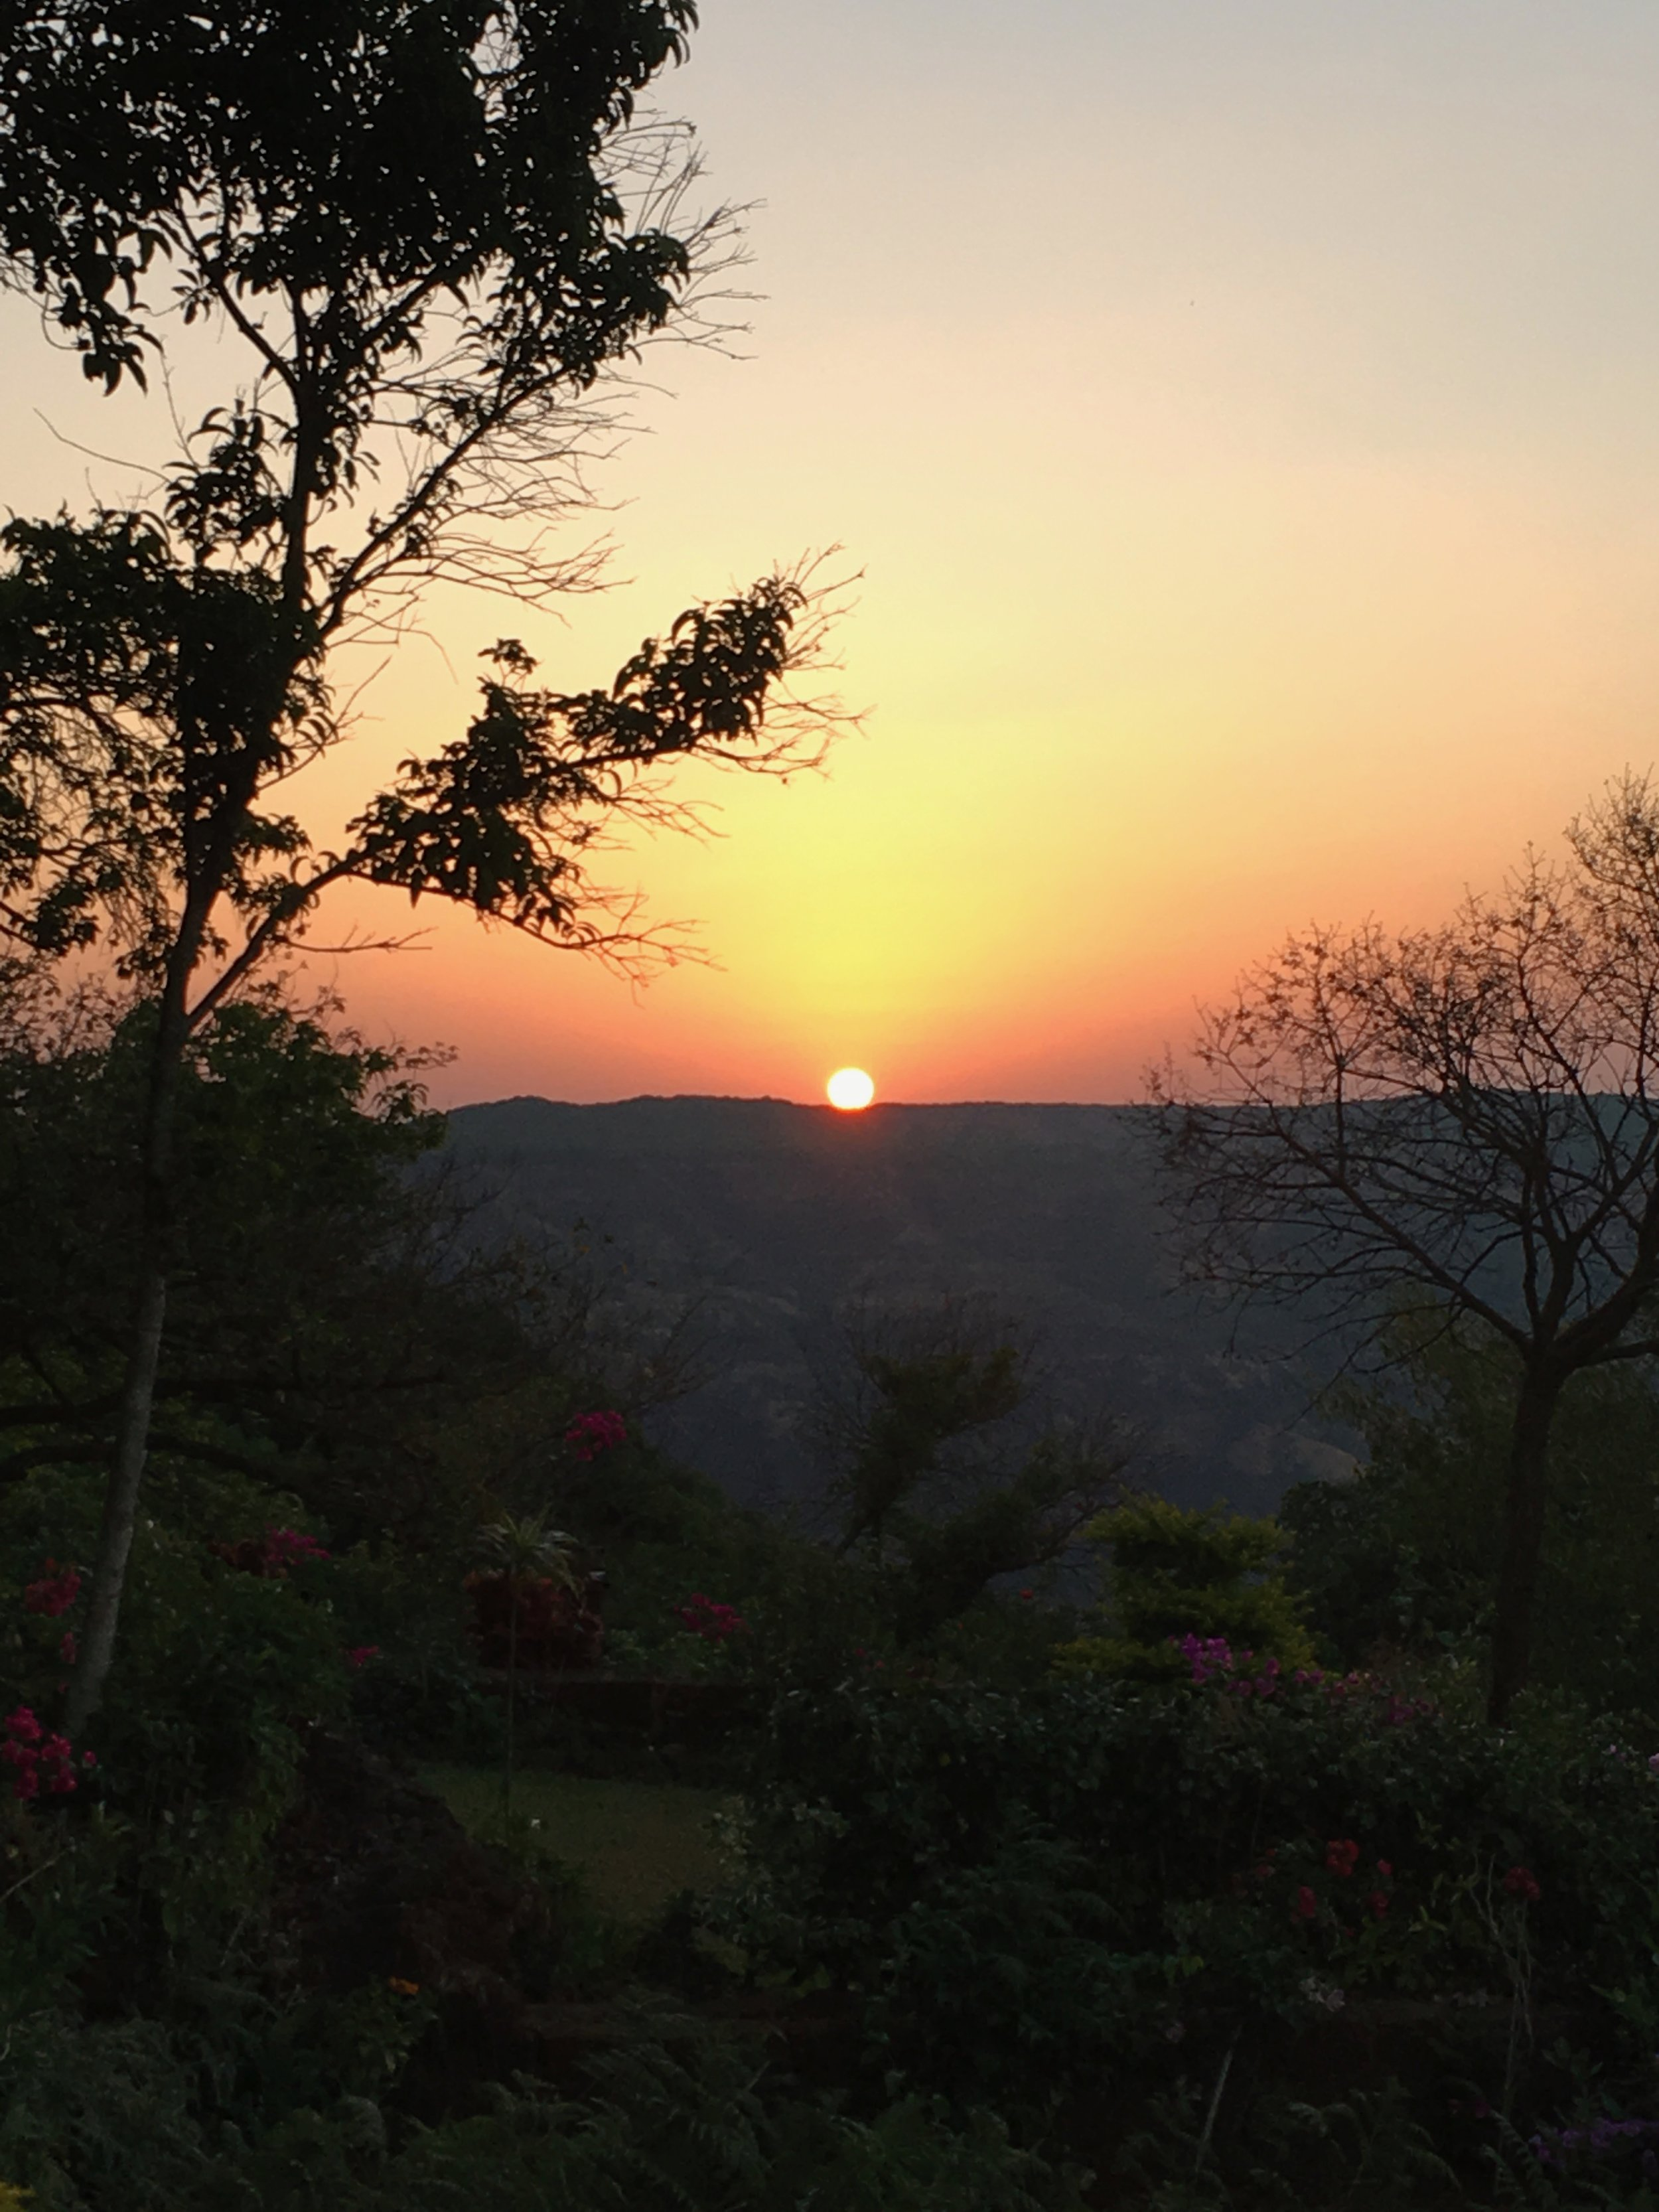 Sunrise in Mahableshwar